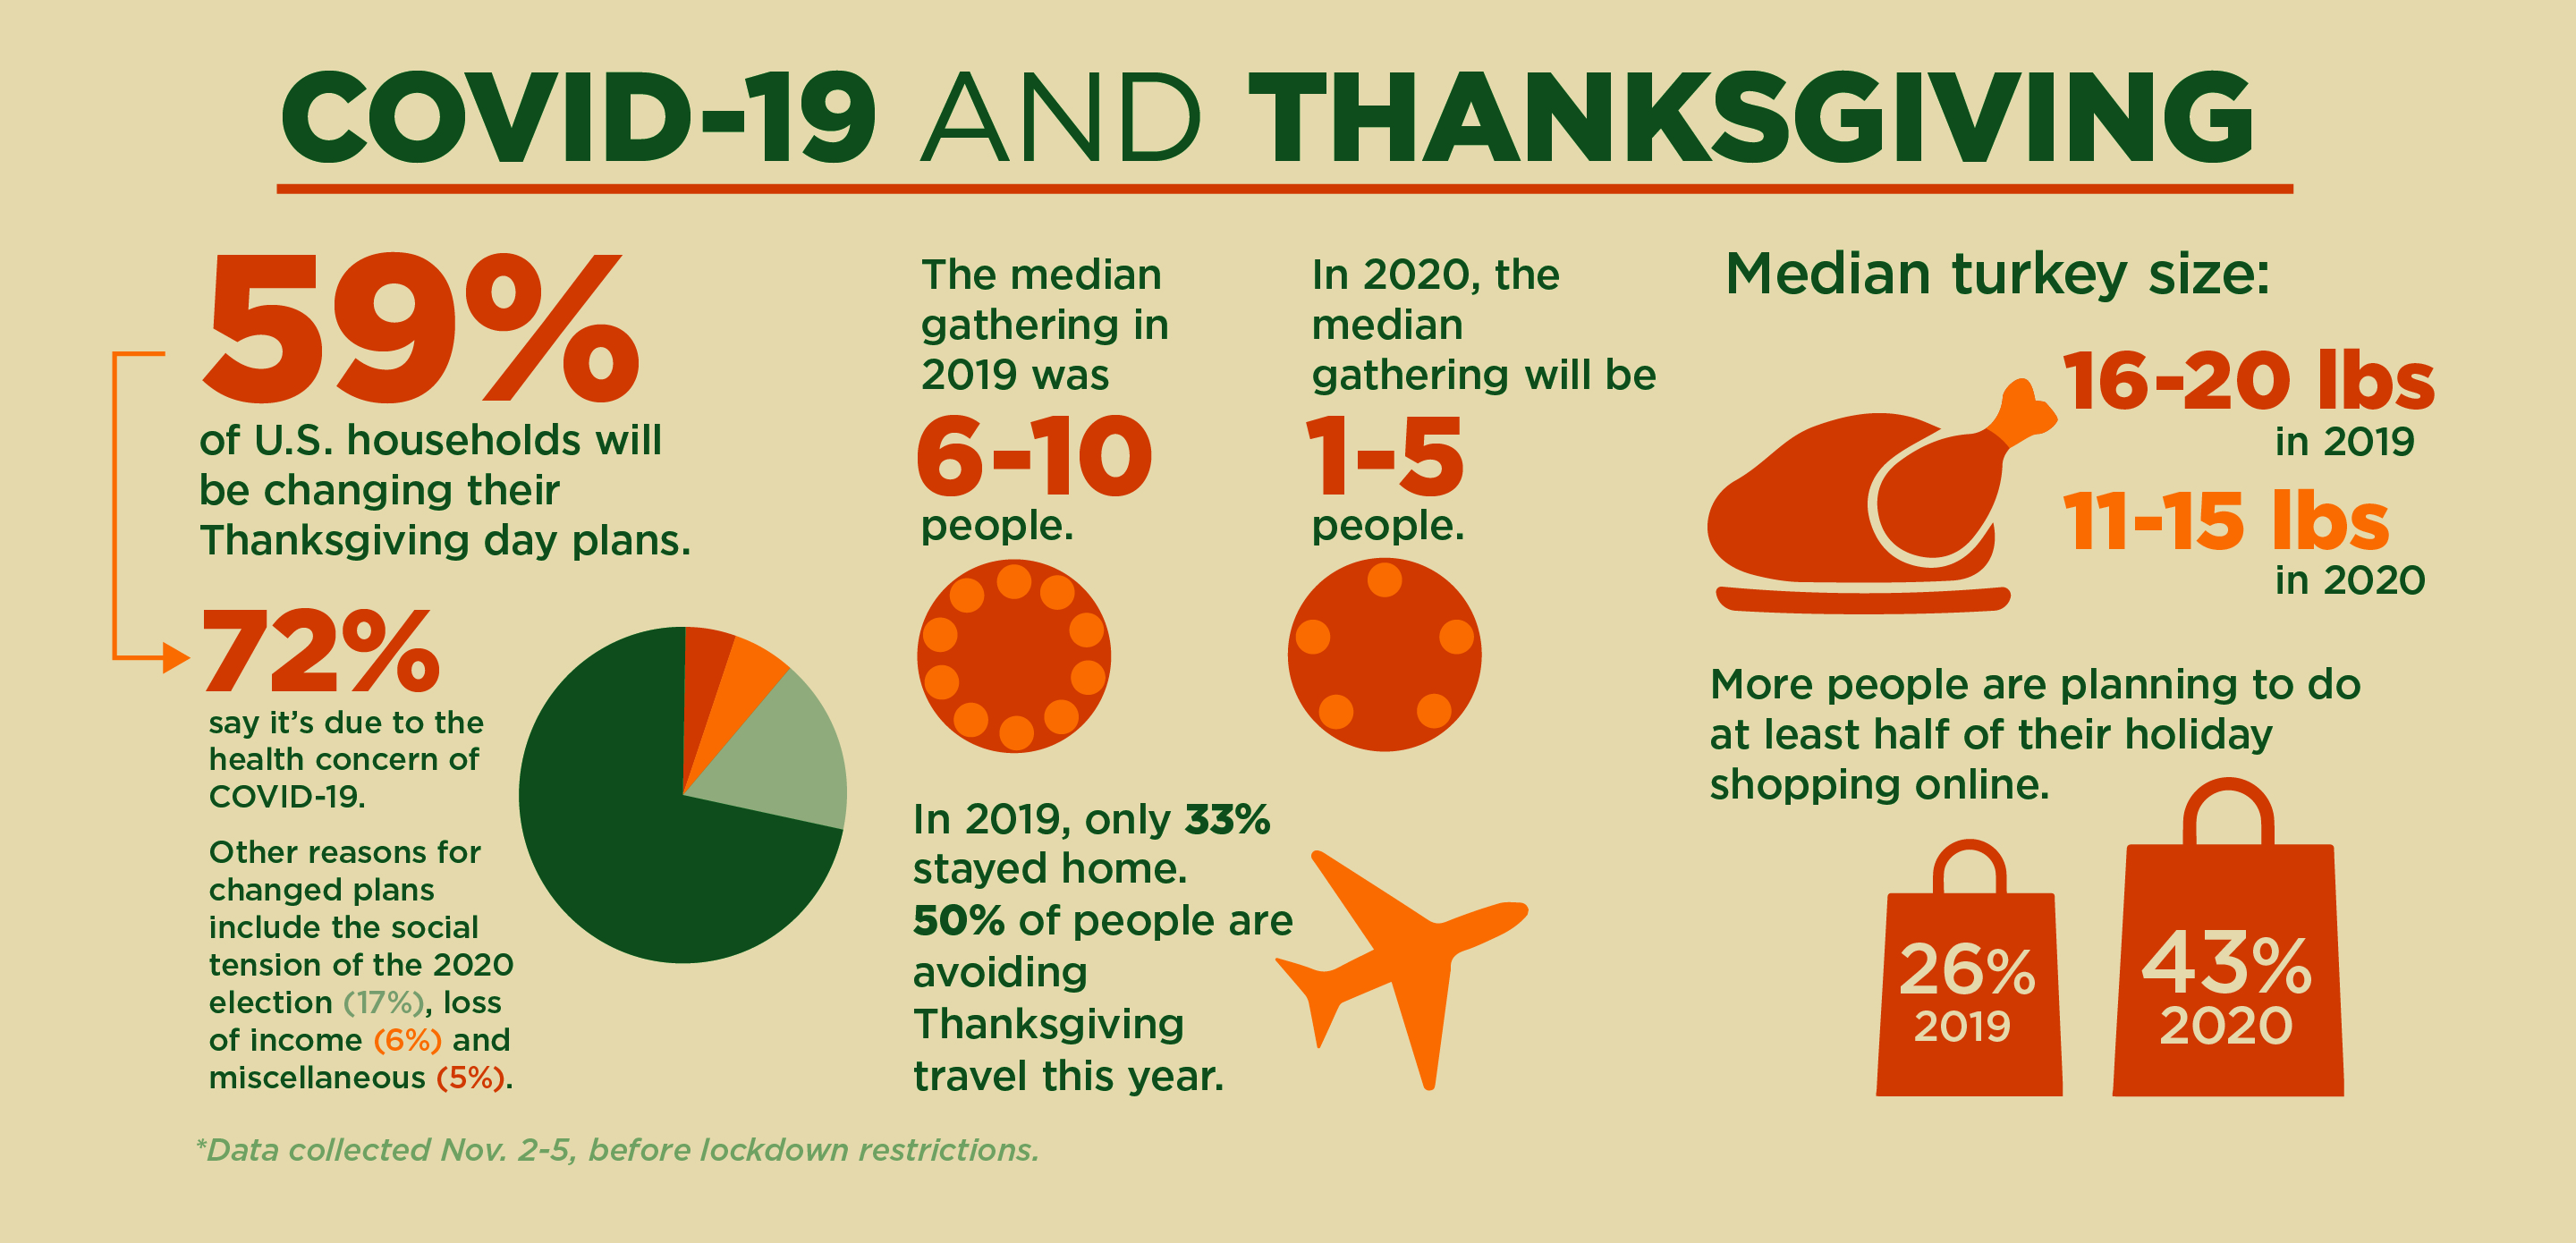 Thanksgiving and COVID-19 infographic